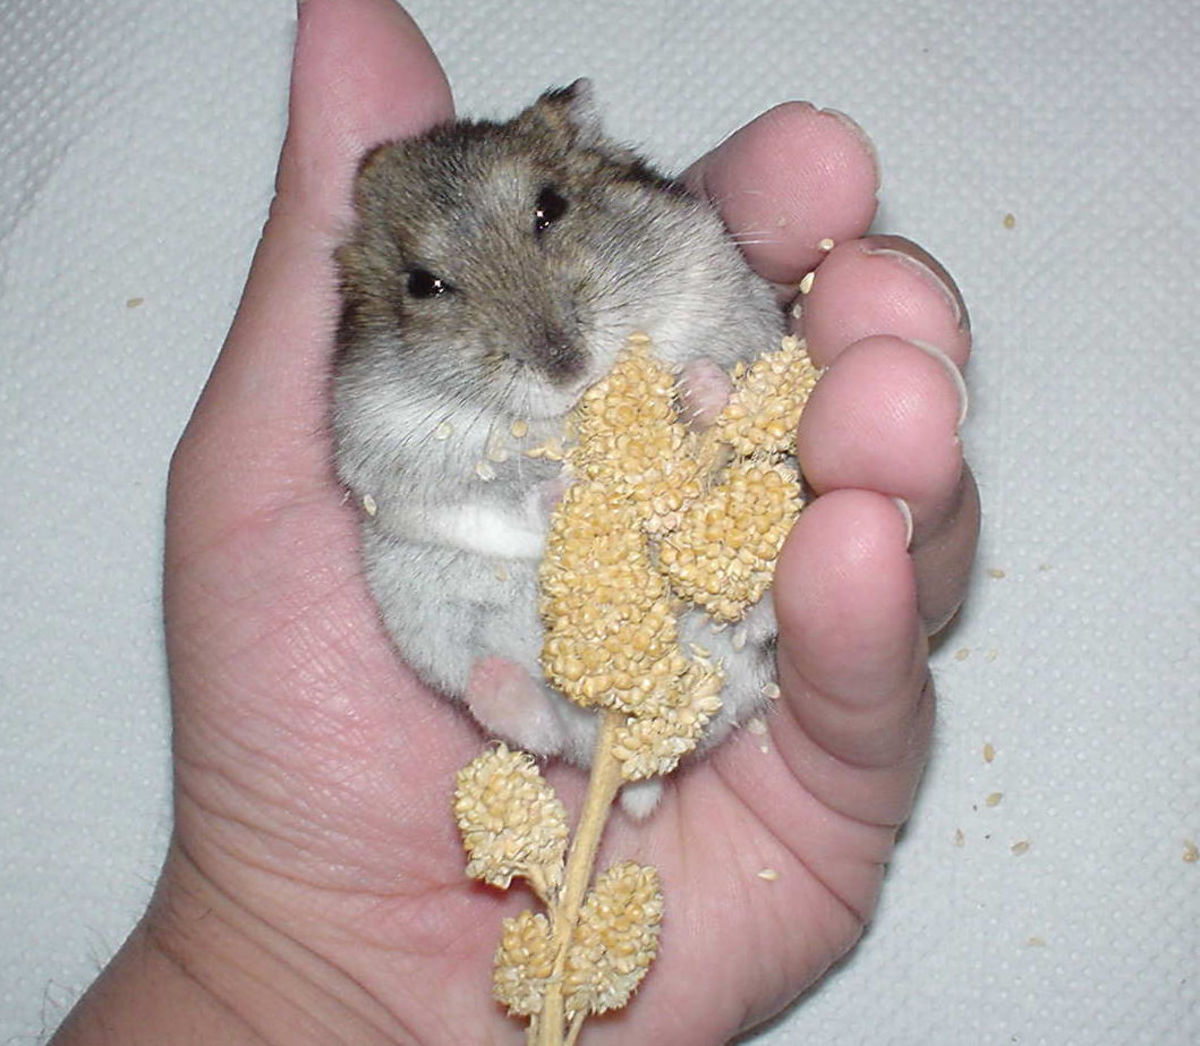 Hamster with millet spray.